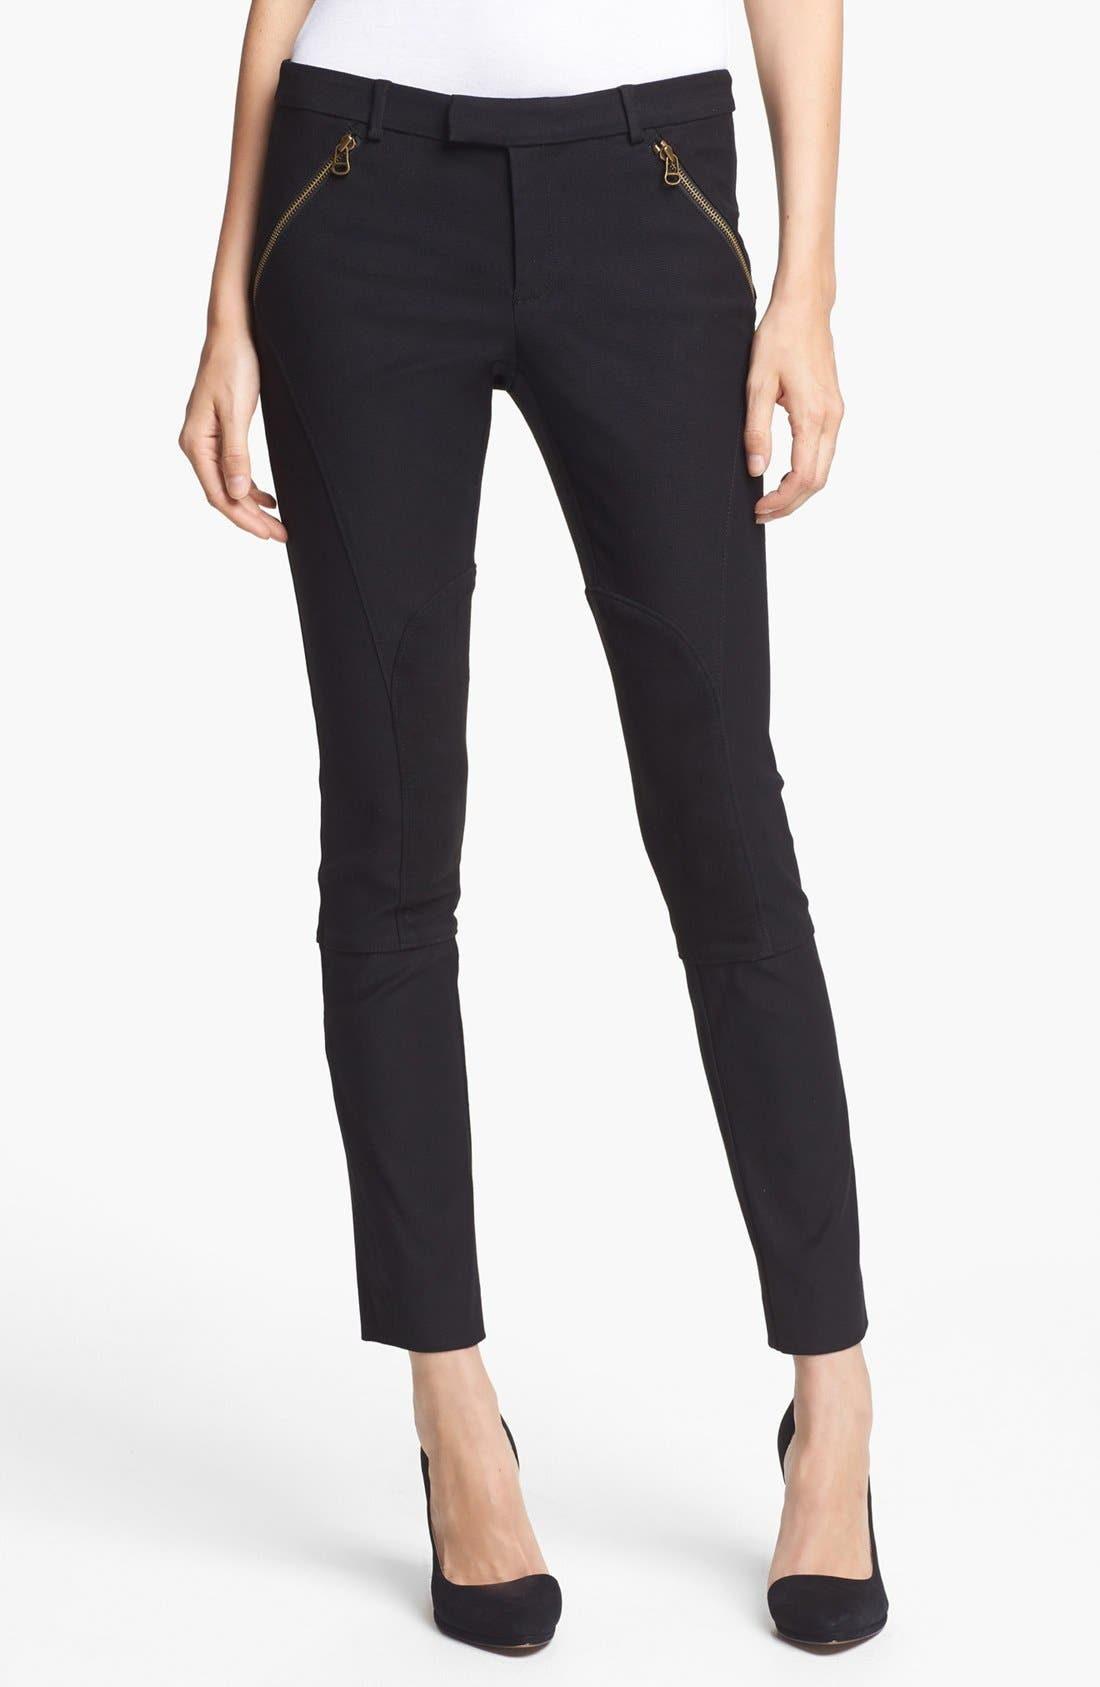 Alternate Image 1 Selected - Rachel Zoe 'Julietta' Crop Riding Pants